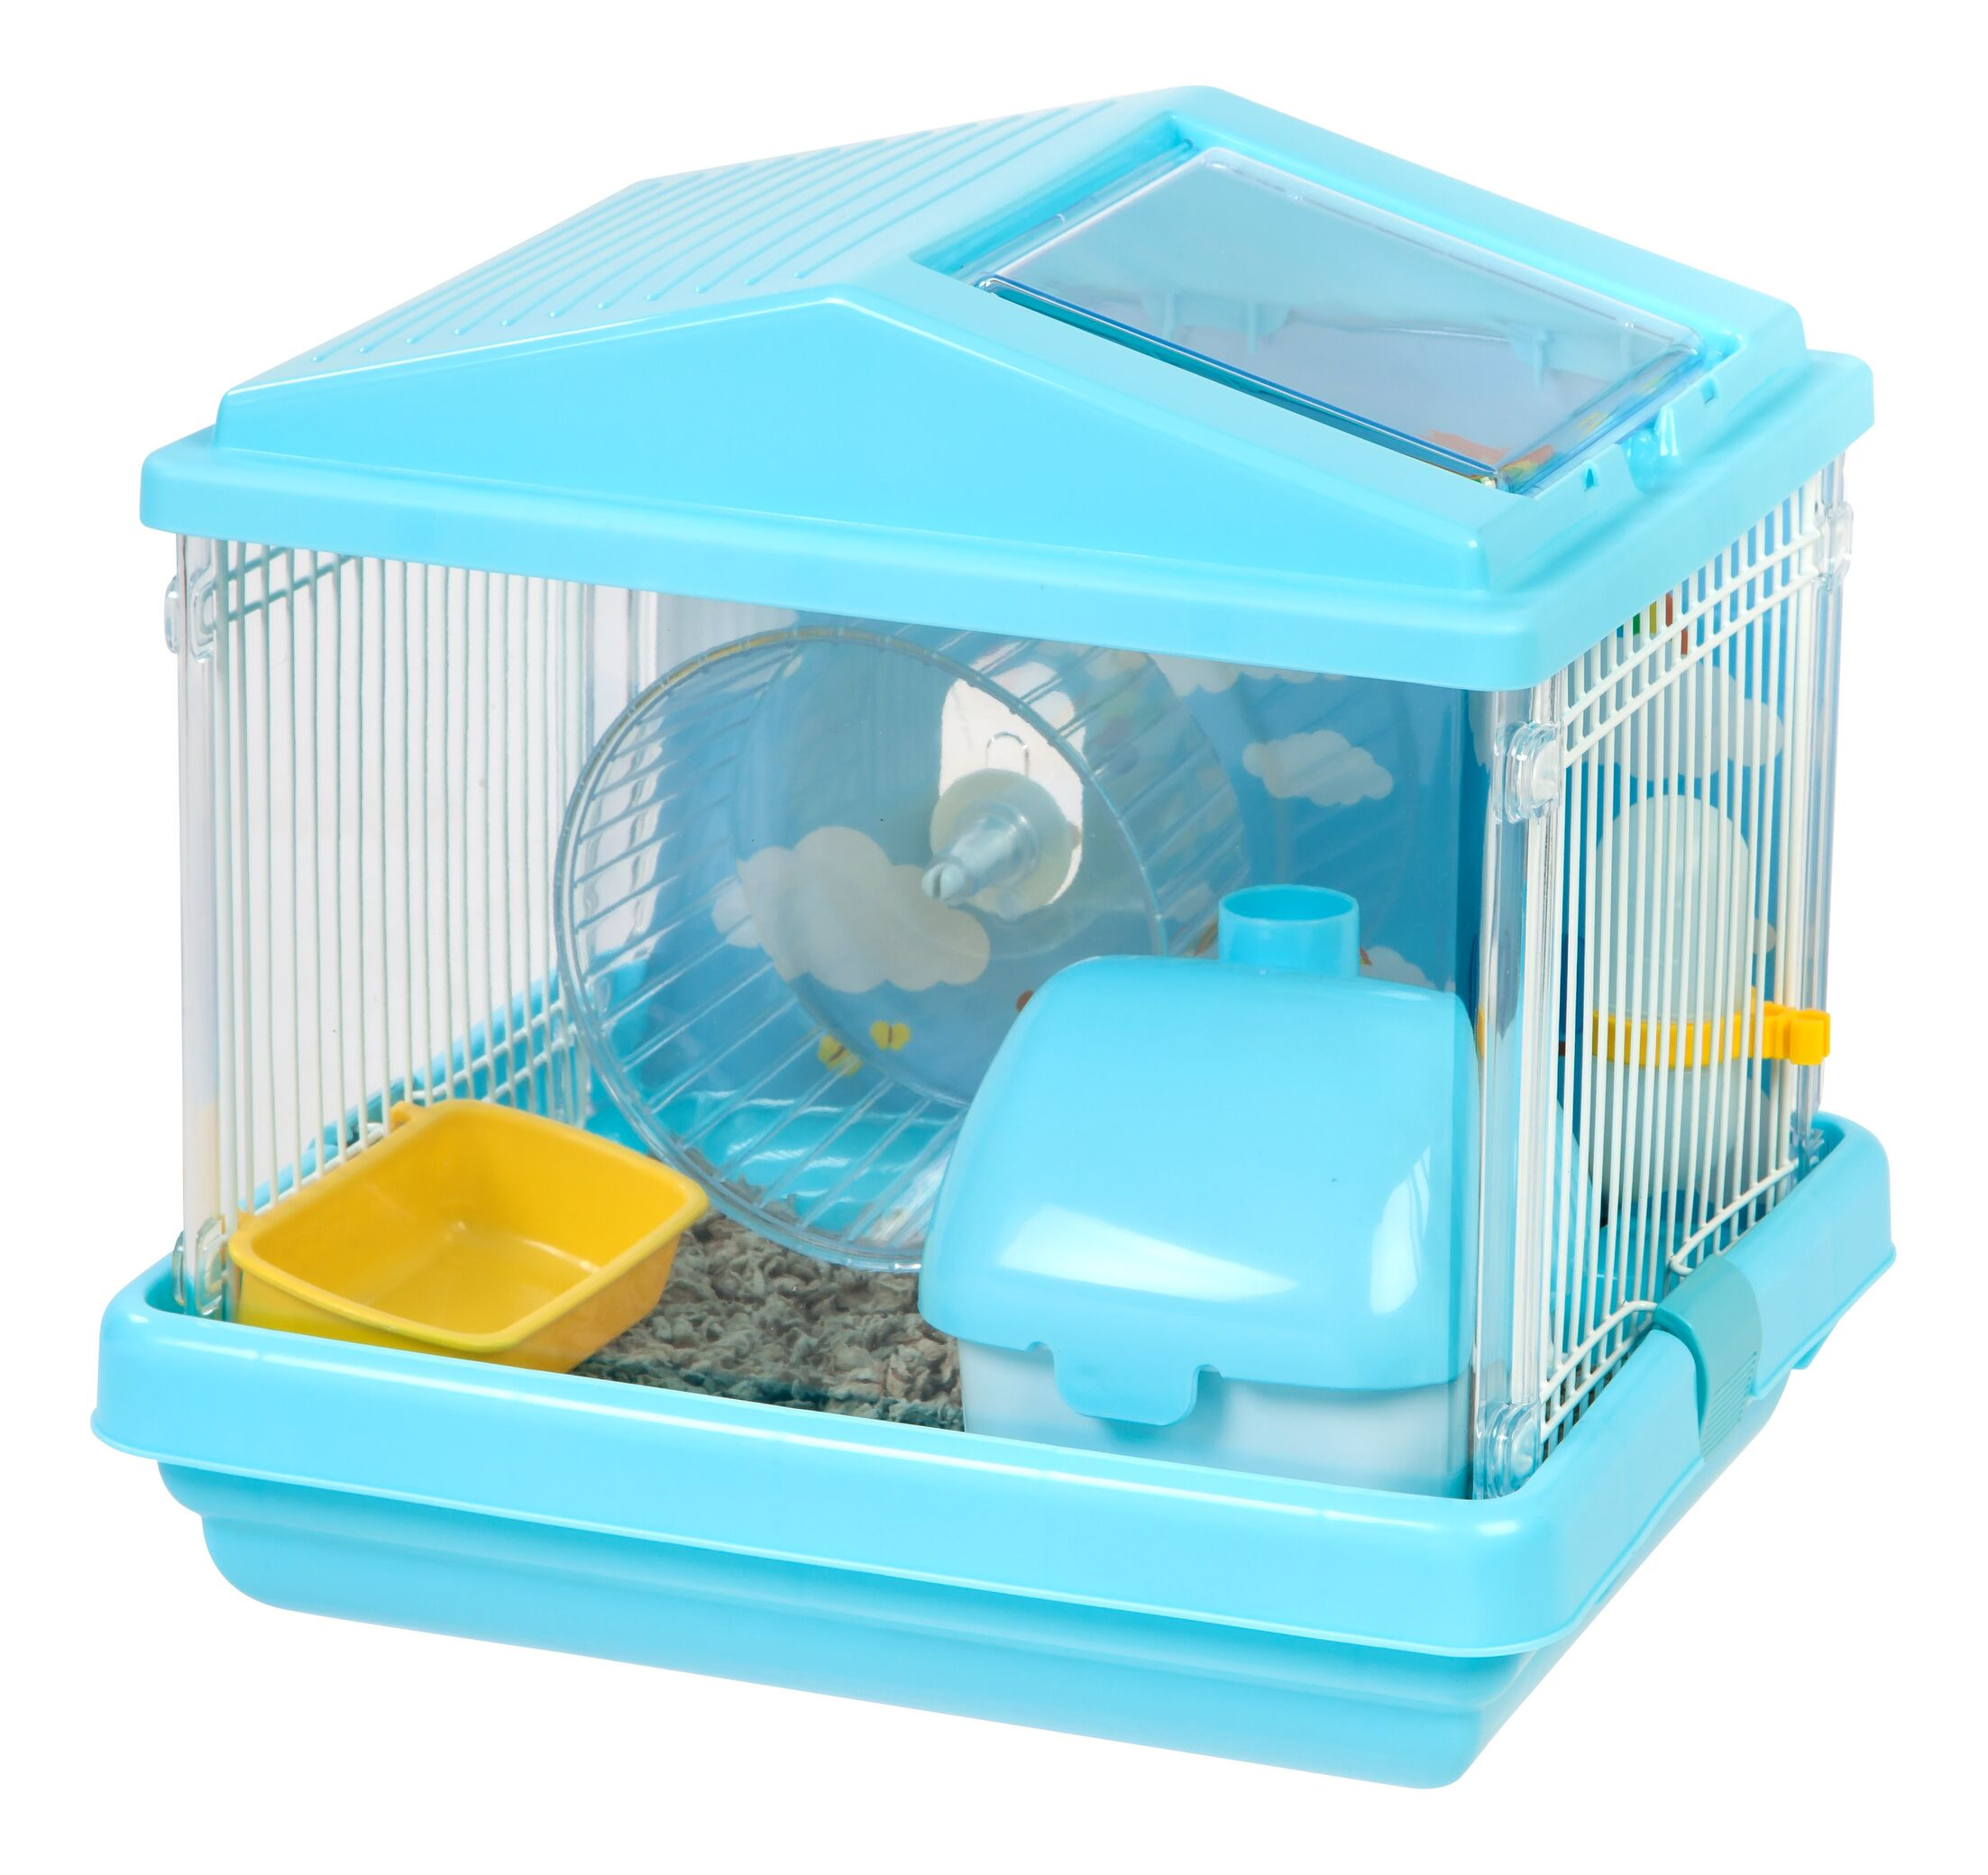 Raymond Hamster Cage Color: Blue